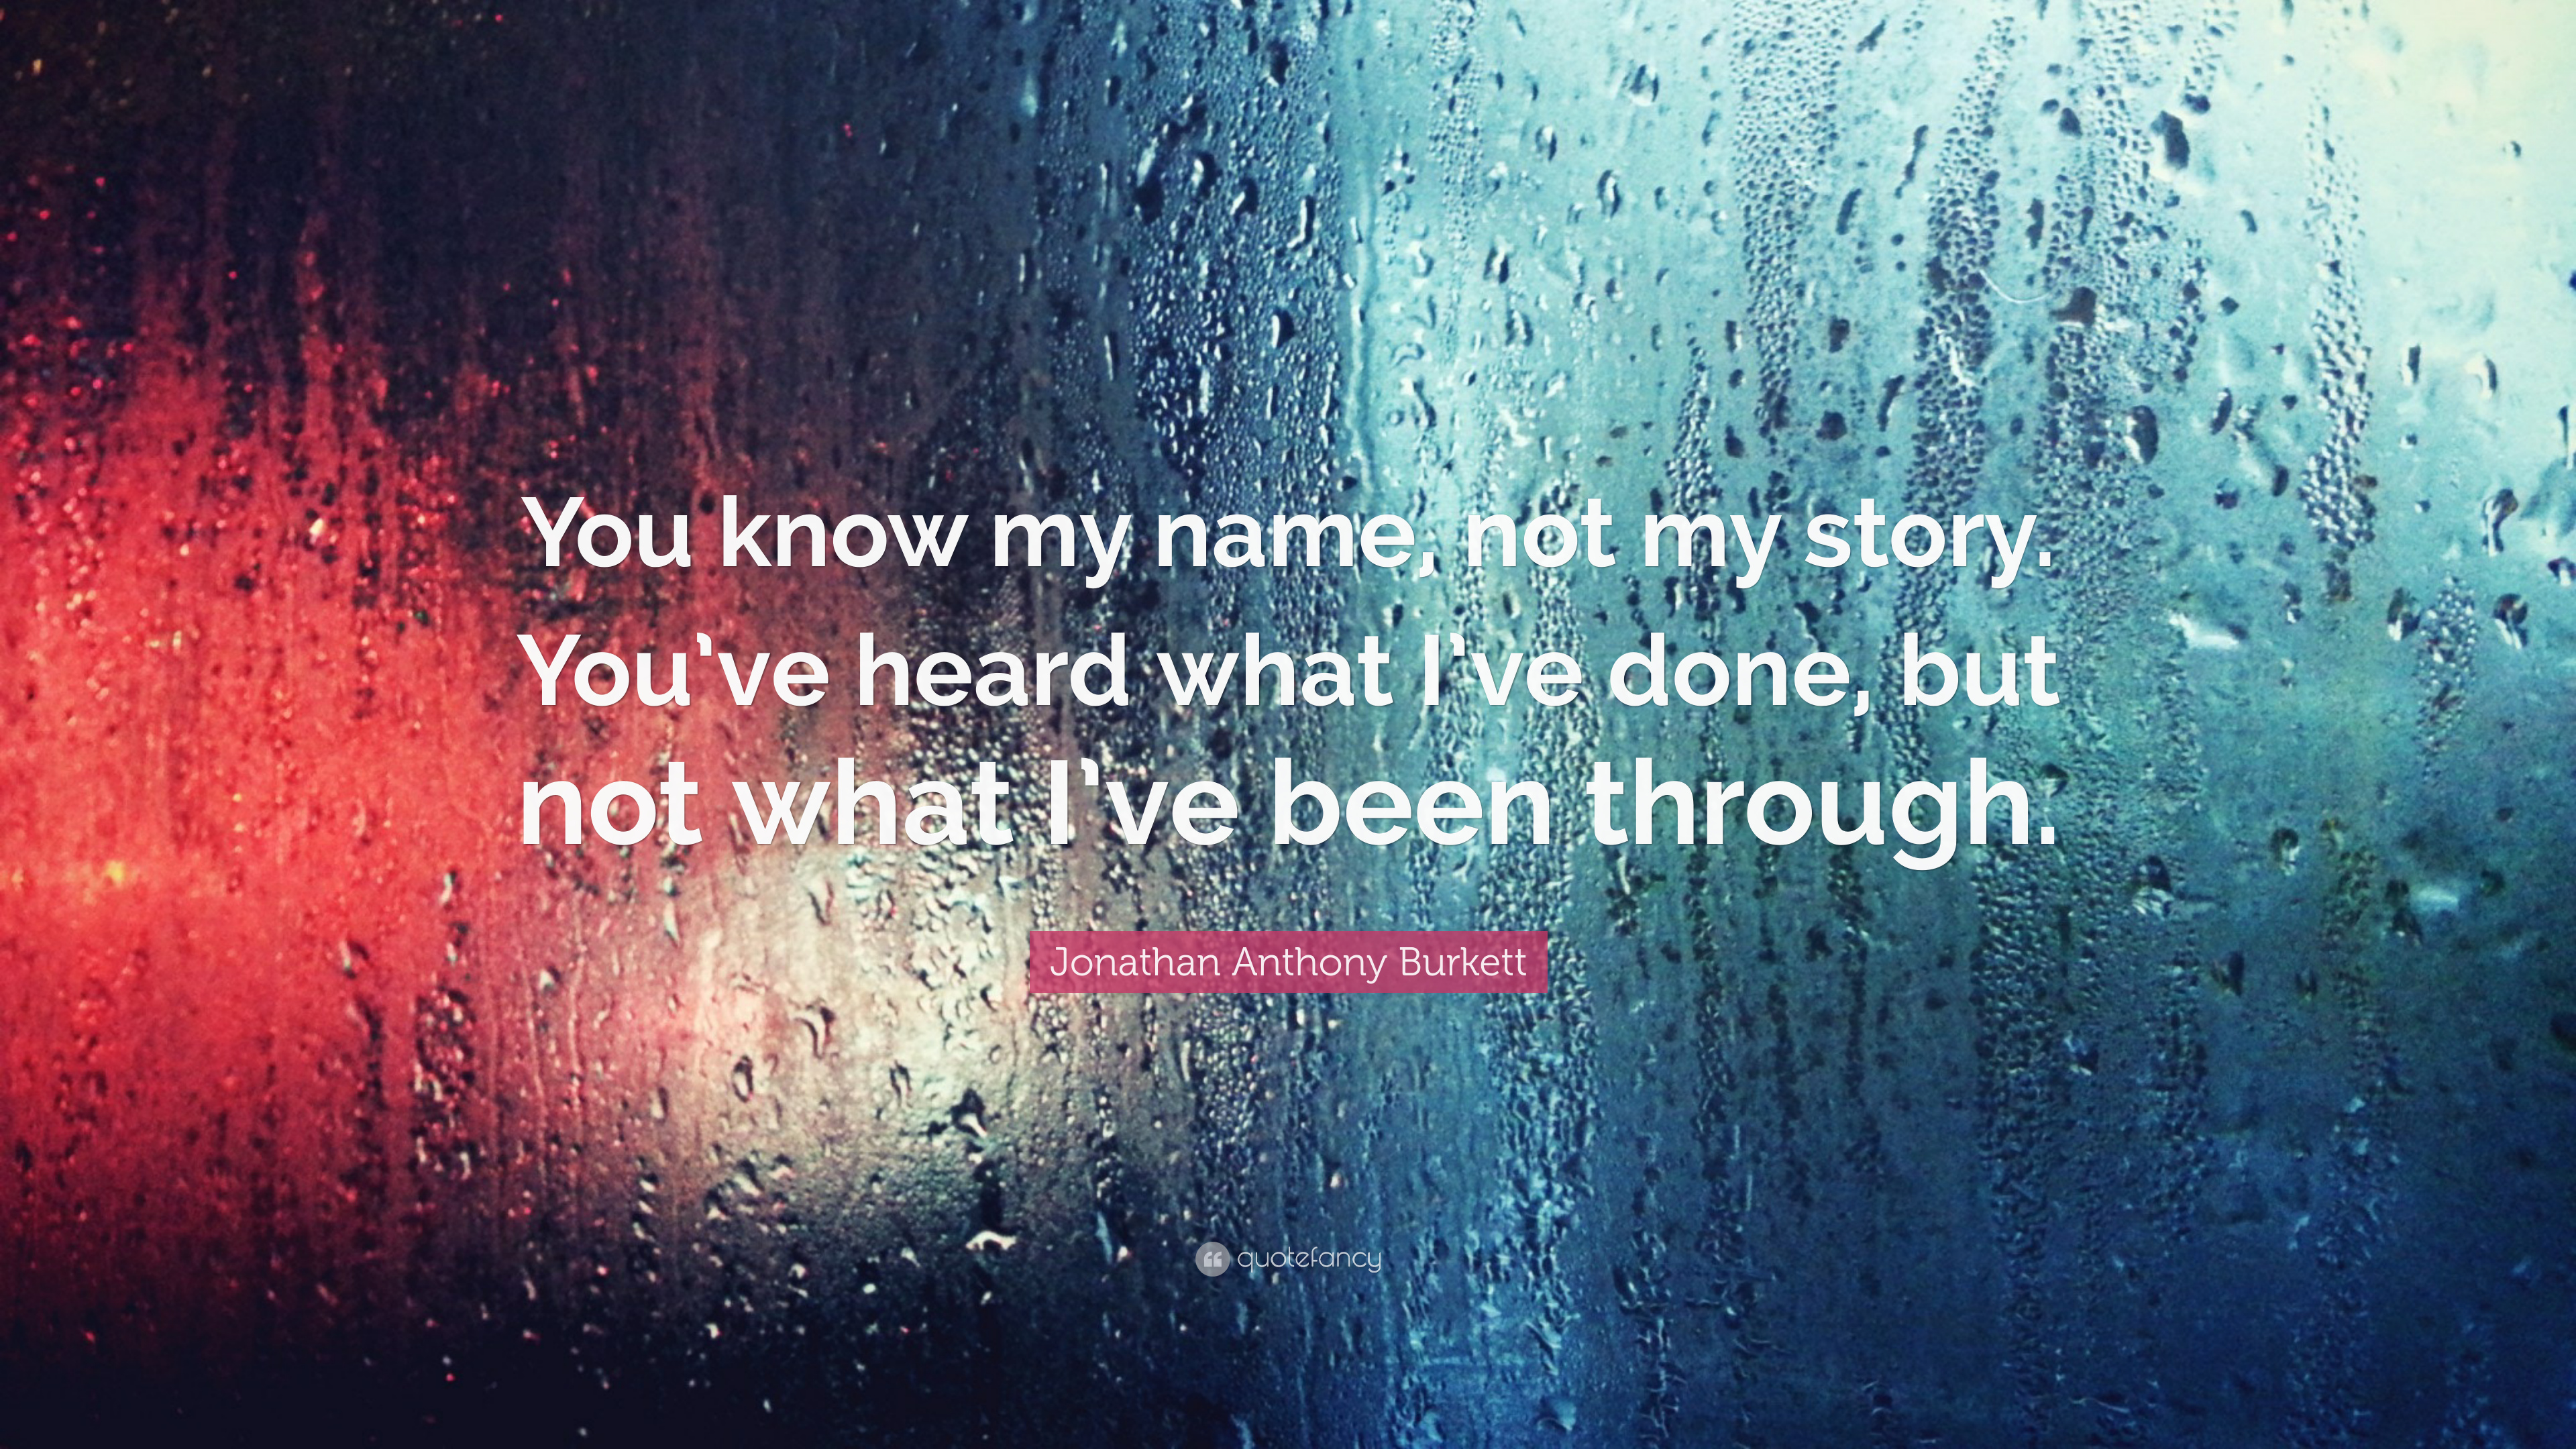 Jonathan Anthony Burkett Quote: You know my name, not my